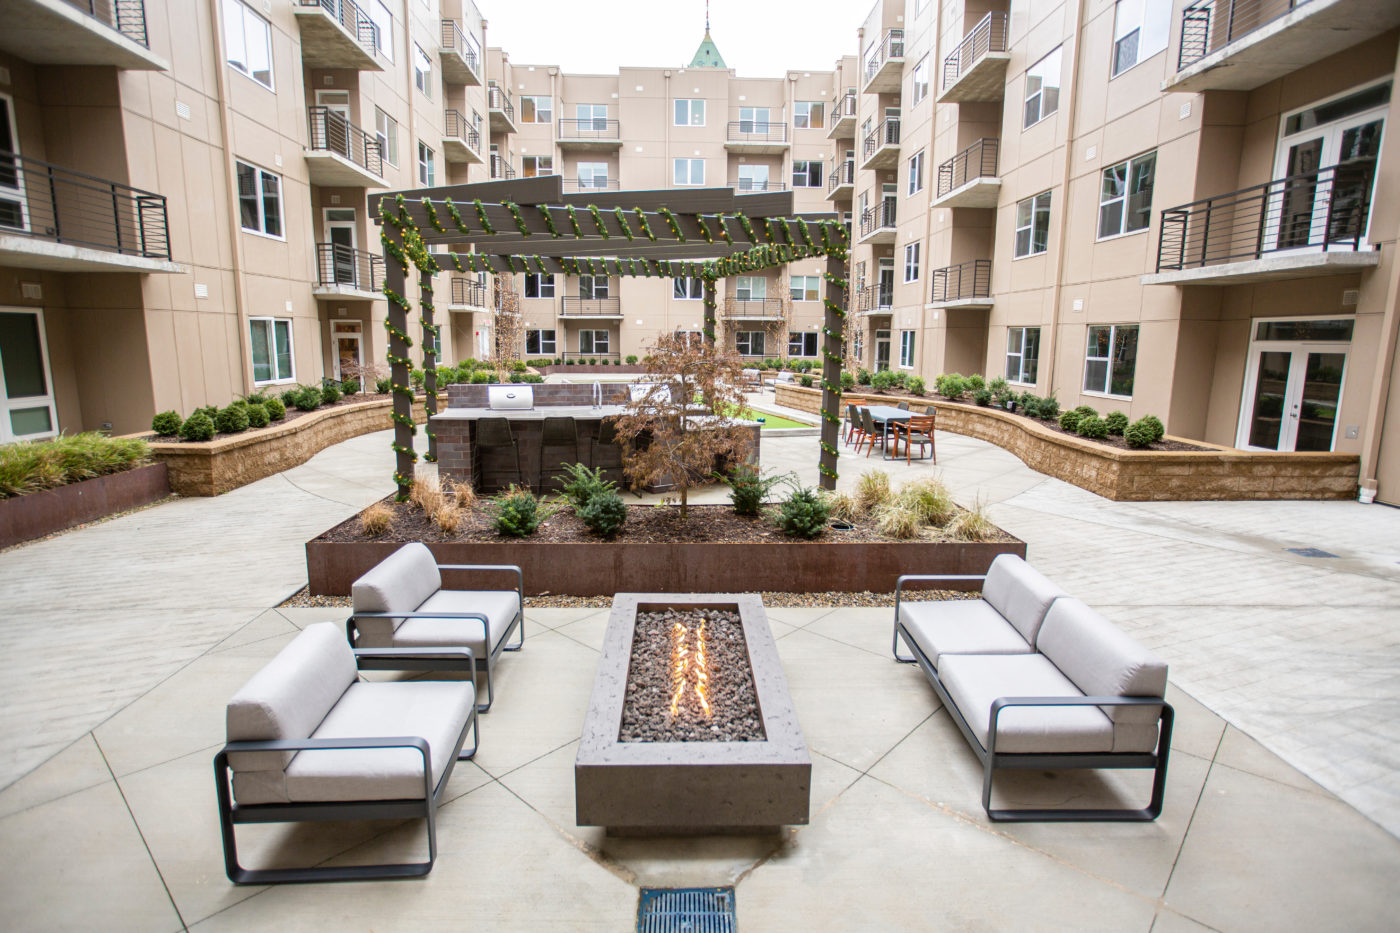 Courtyard with fire pit at The Boulevard in Detroit